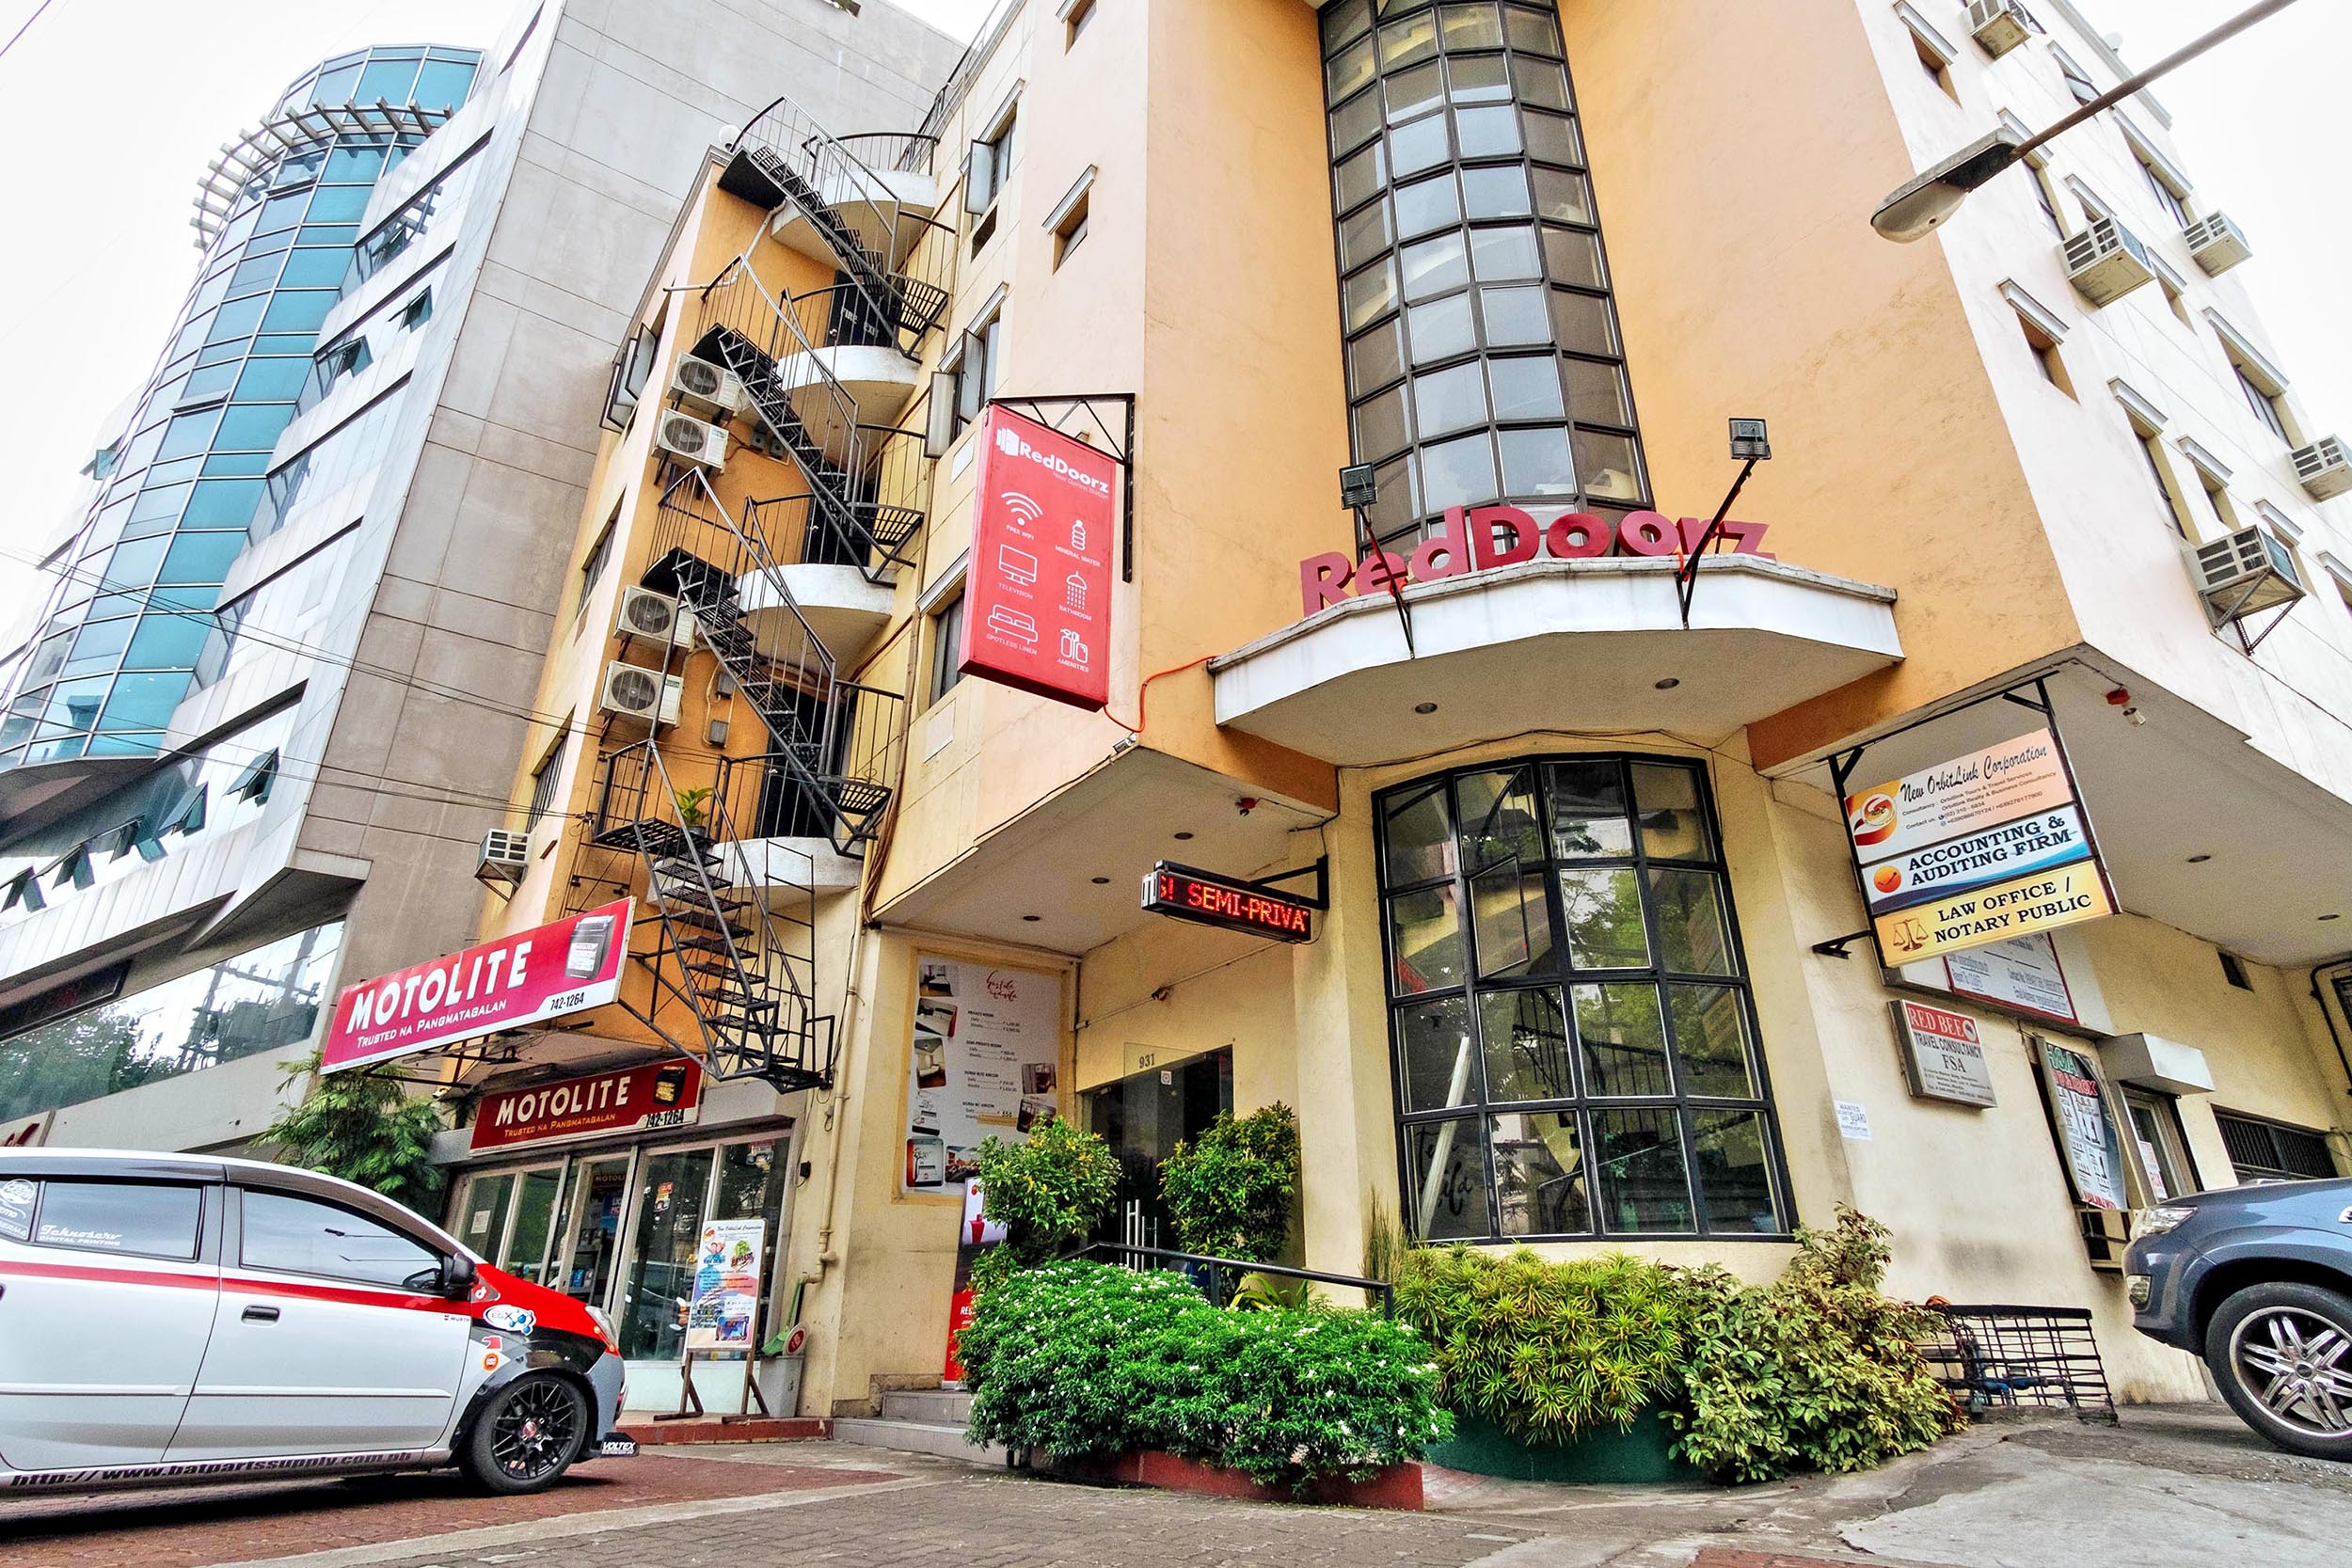 RedDoorz partners with DOT and Manila City Hall offers free accommodation for frontline healthcare workers in Manila